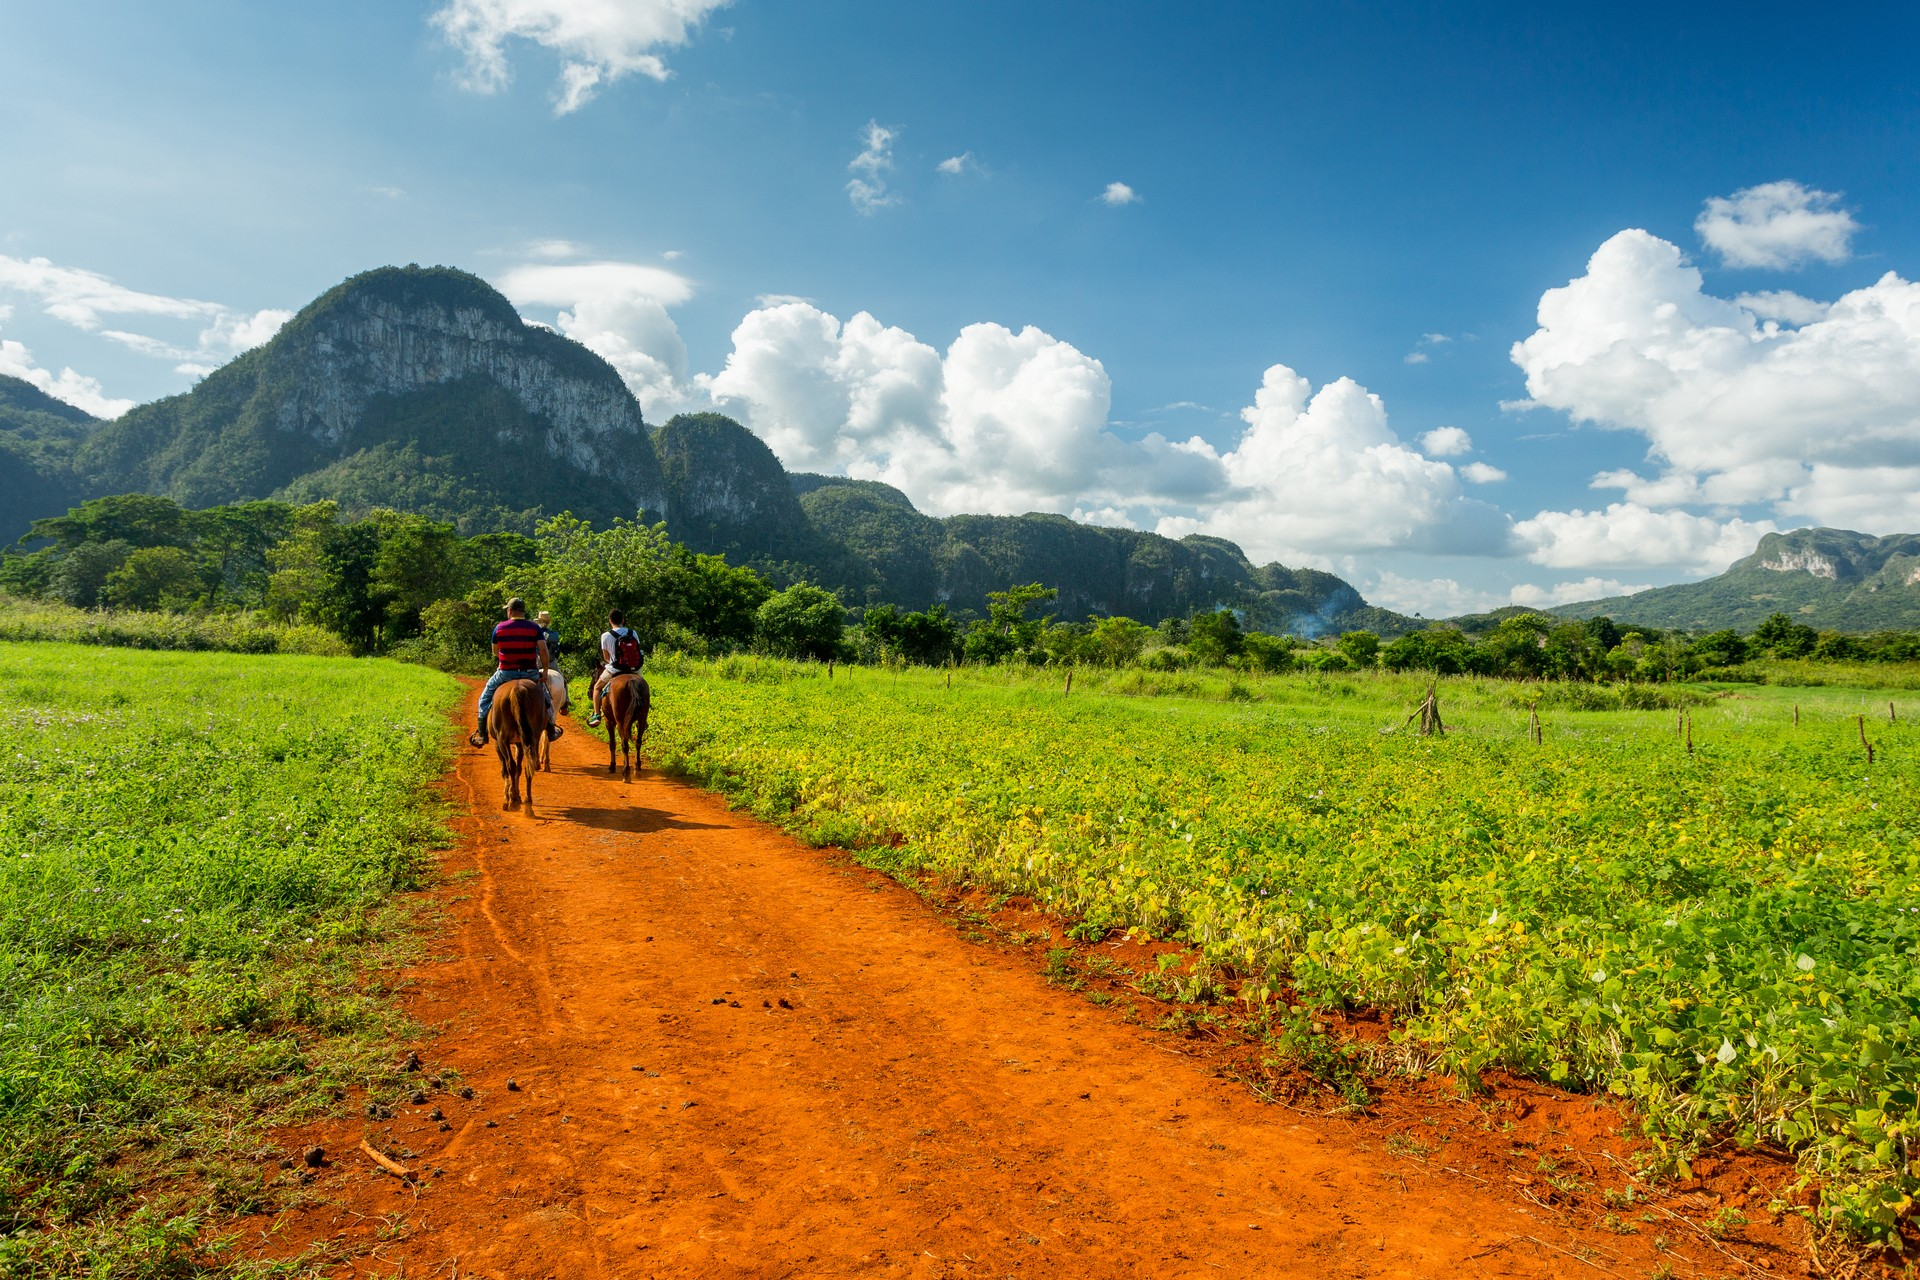 The Viñales Valley is a great destination for older children